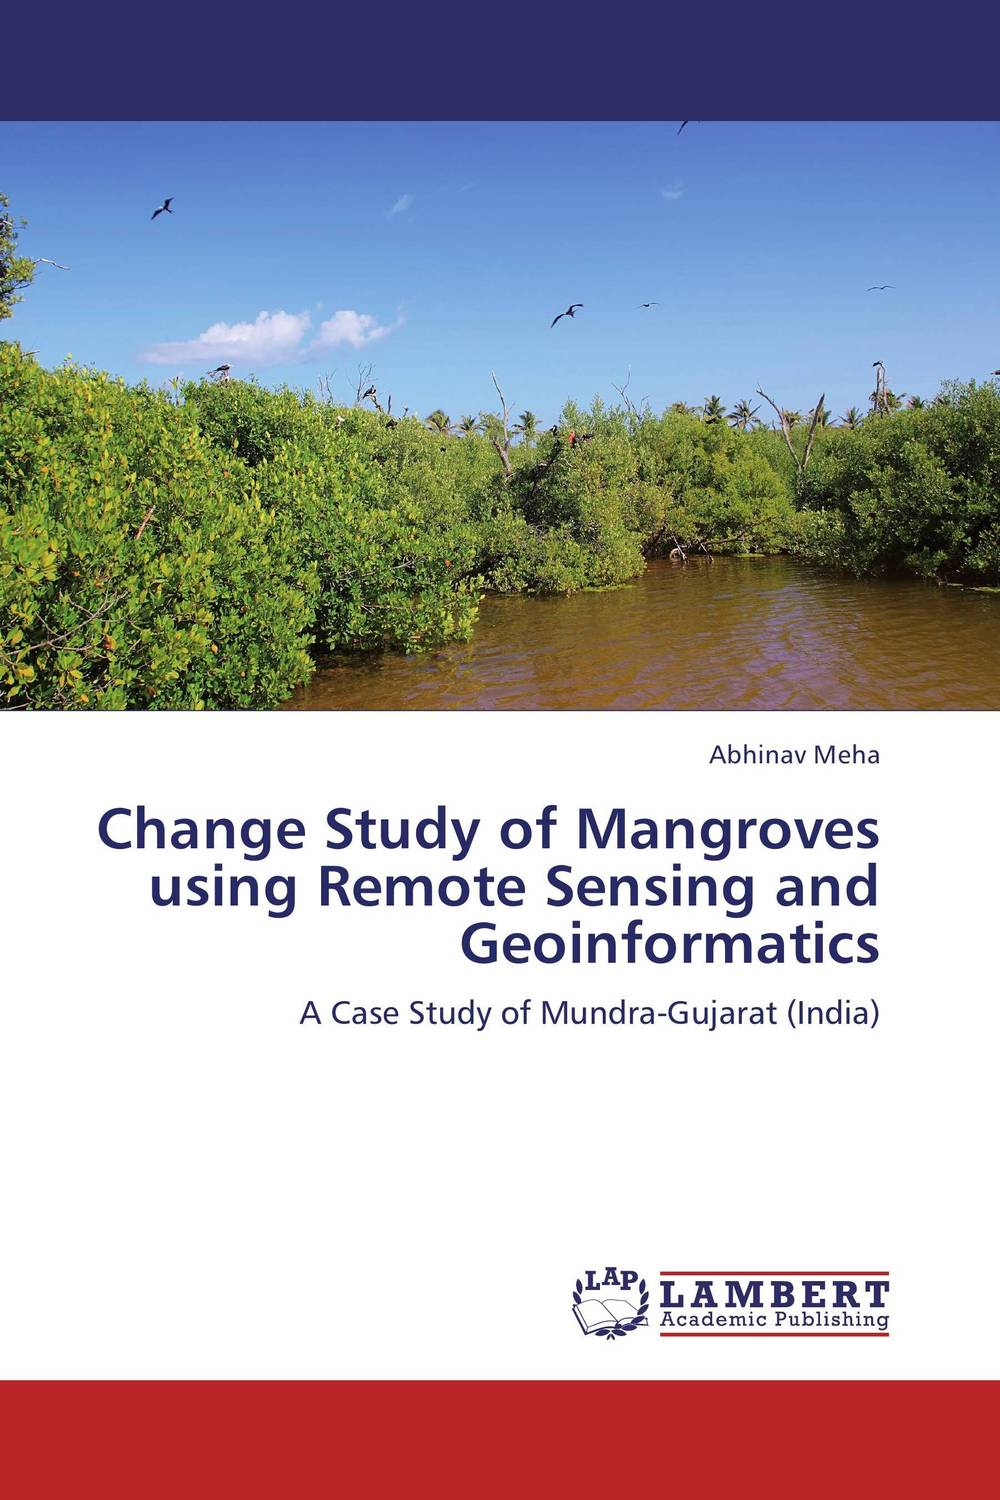 цены Change Study of Mangroves using Remote Sensing and Geoinformatics